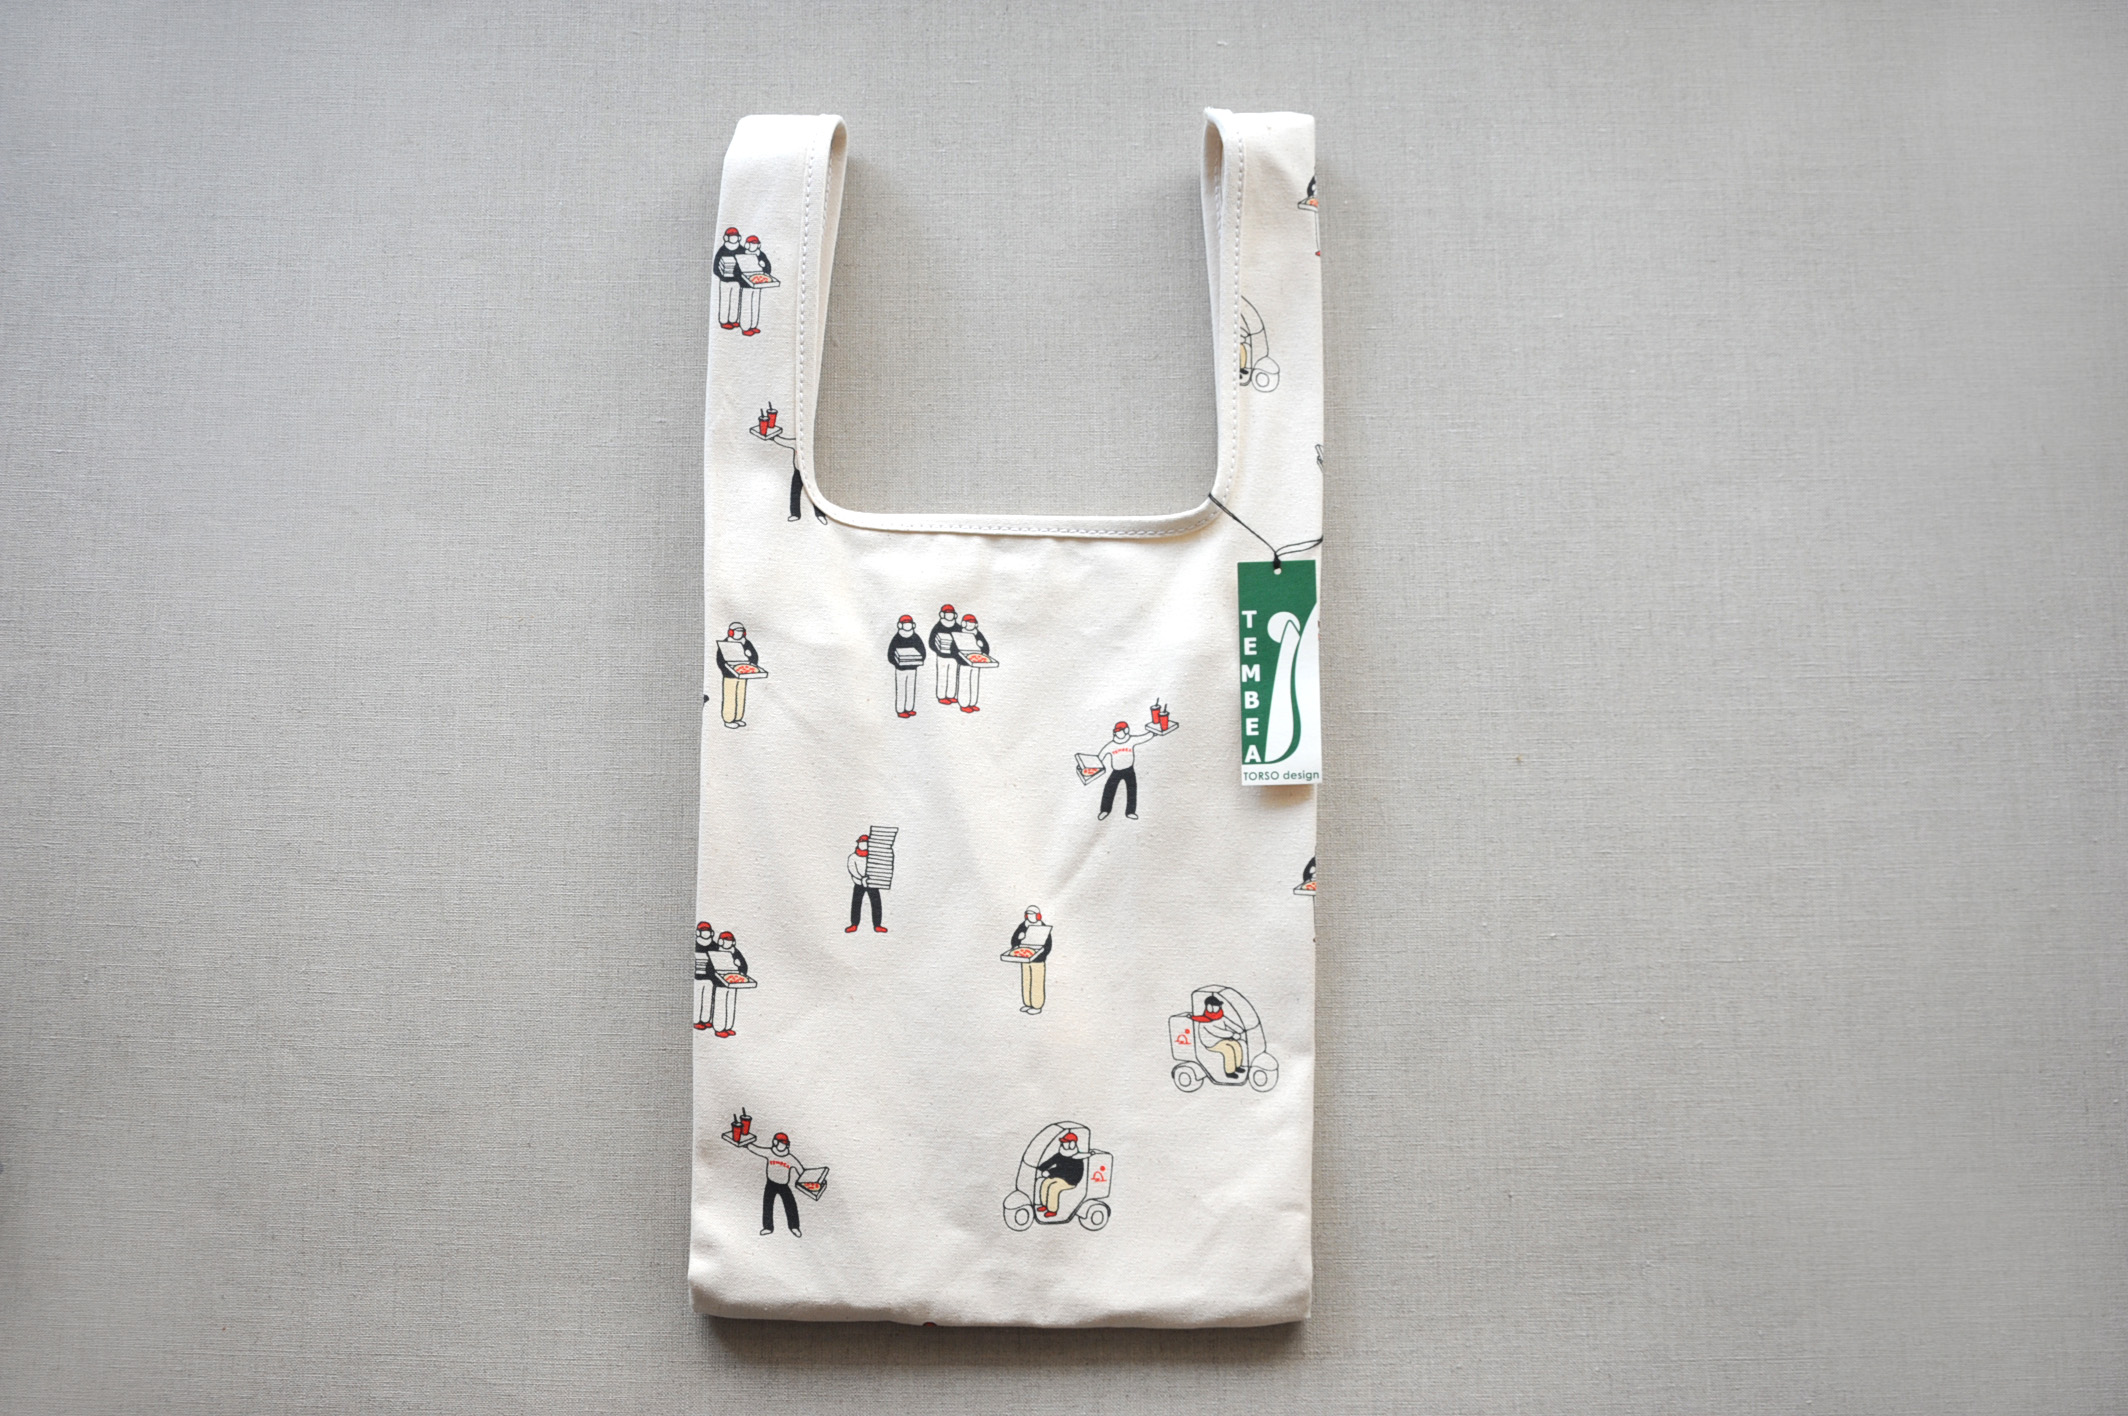 TEMBEA(テンベア) MARCHE BAG(マルシェバッグ) プリント